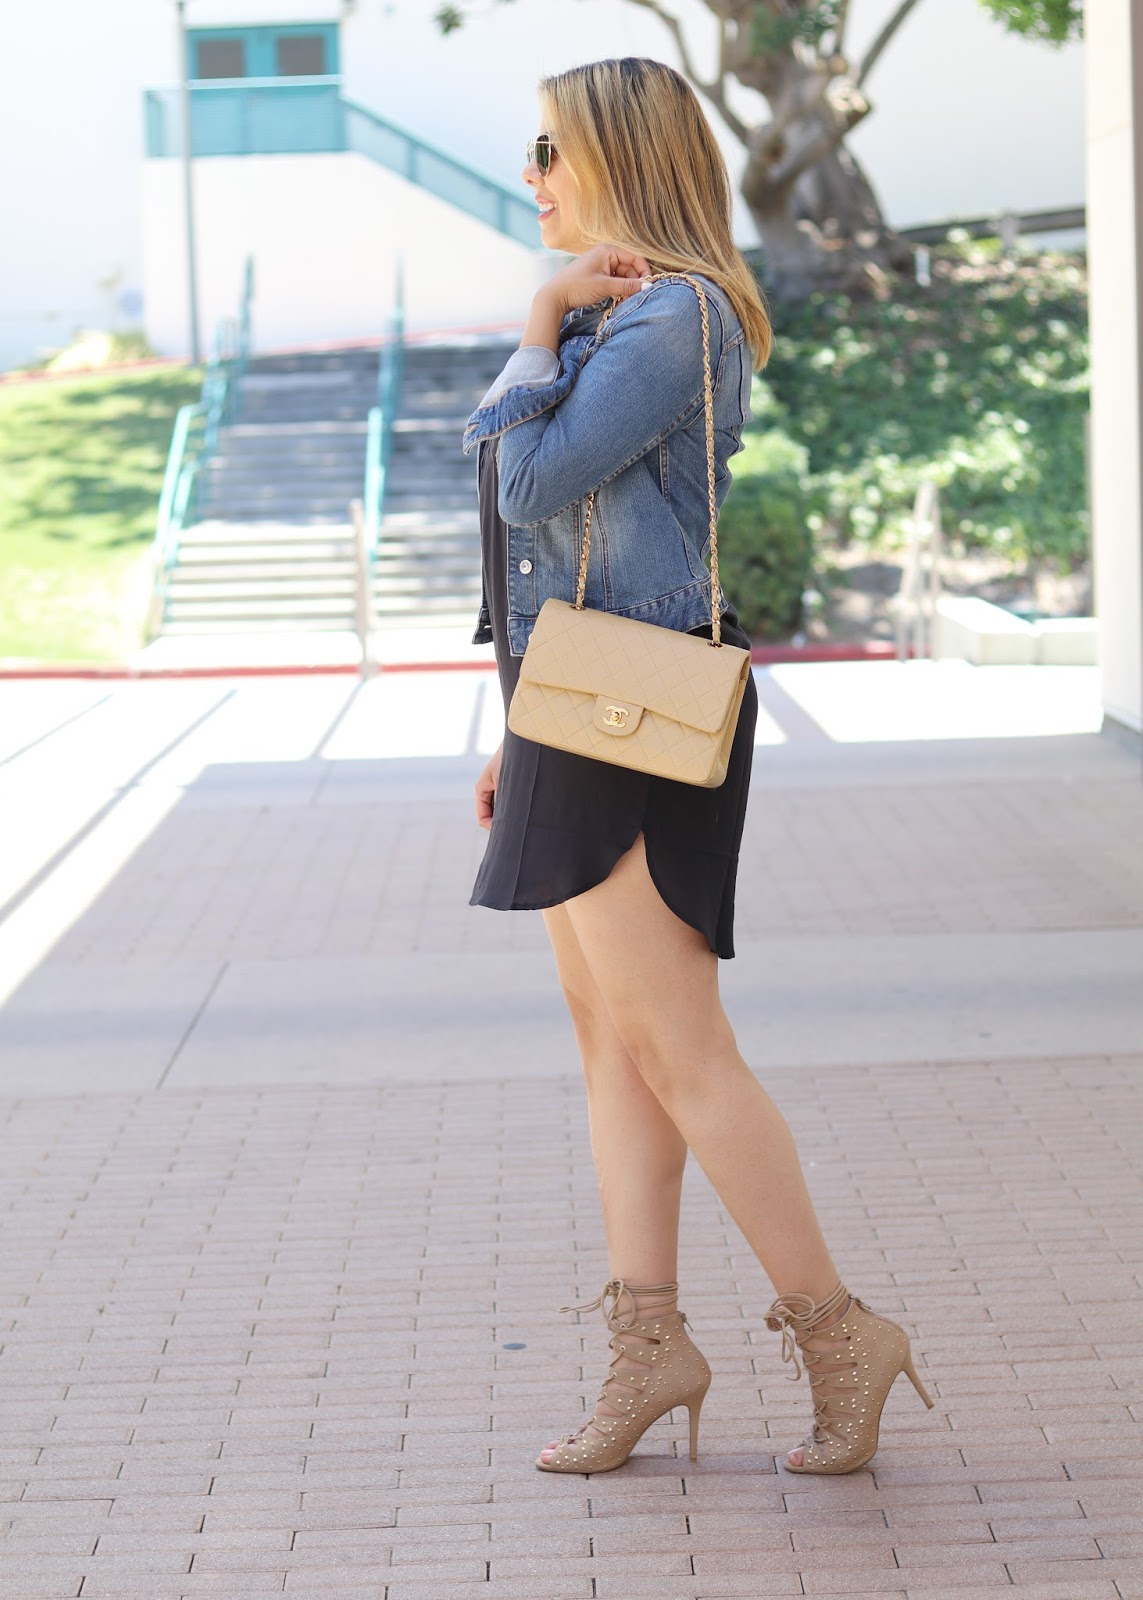 Black with beige accessories, justfab beige lace up heels, nude sandal heels, latina fashion blogger